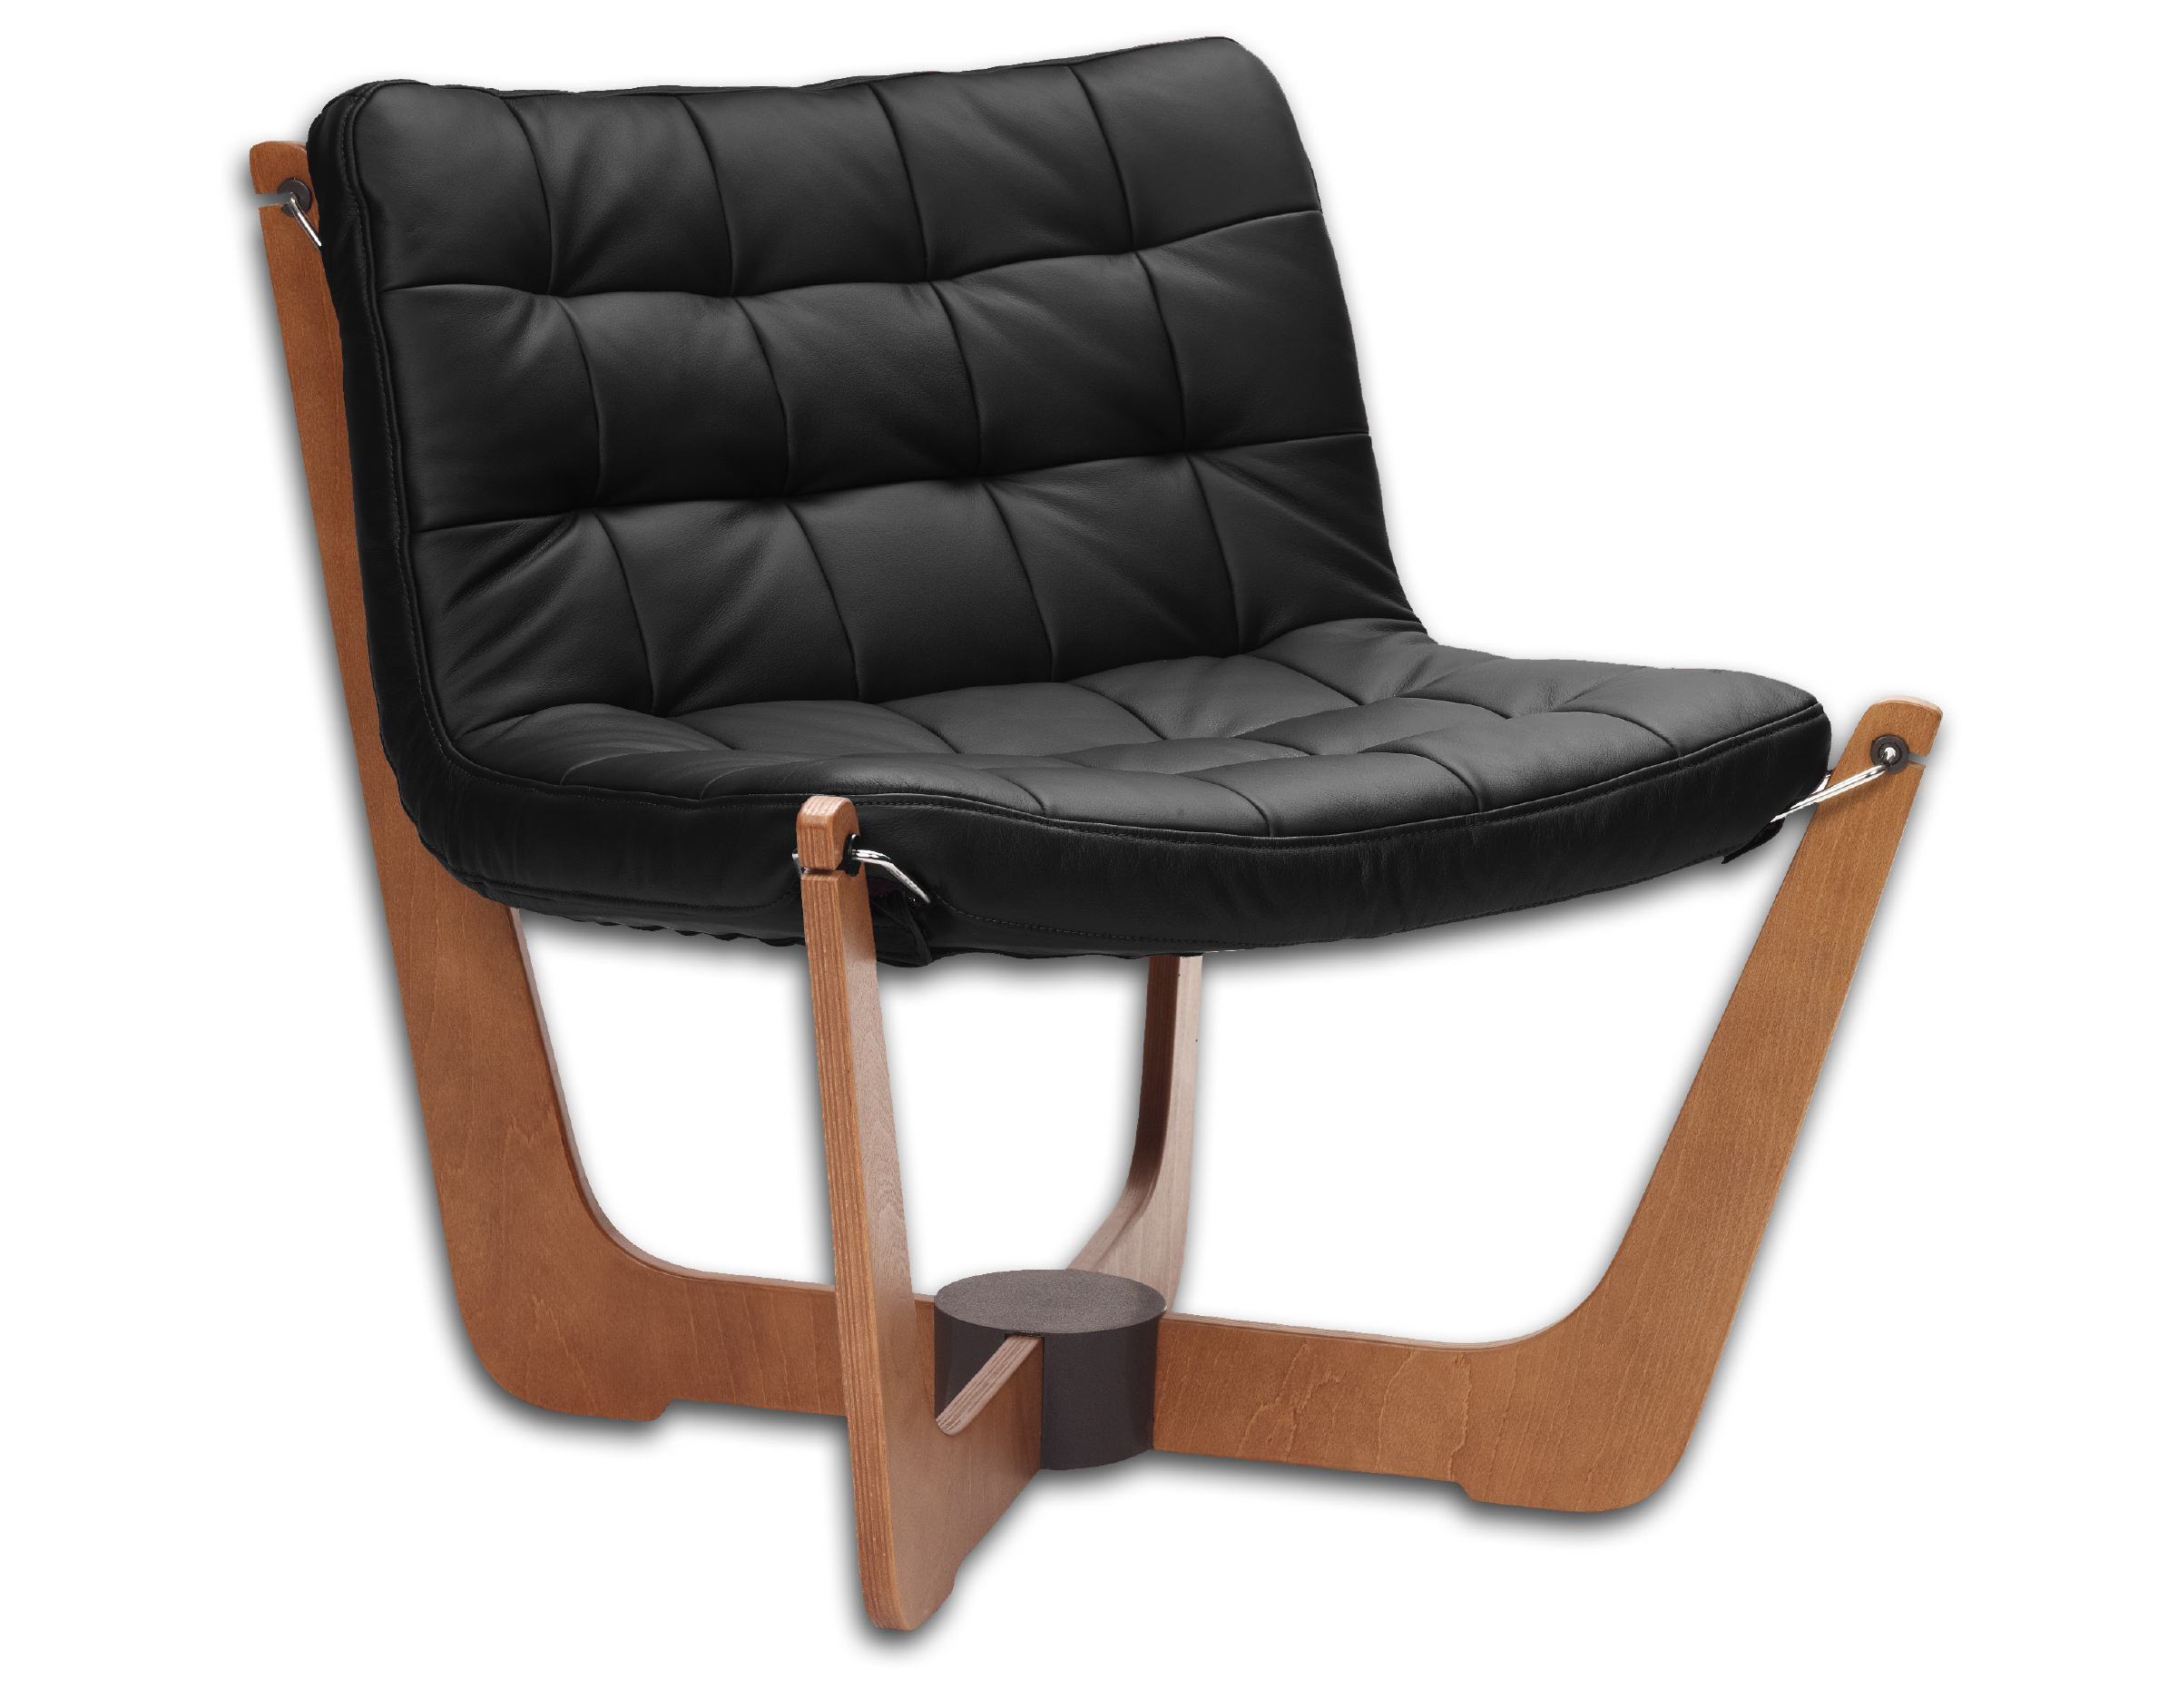 Scandinavian Furniture San Diego Fjords Hjellegjerde Classics Collection Scandinavian Modern Lounger Furniture By Hjellegjerde